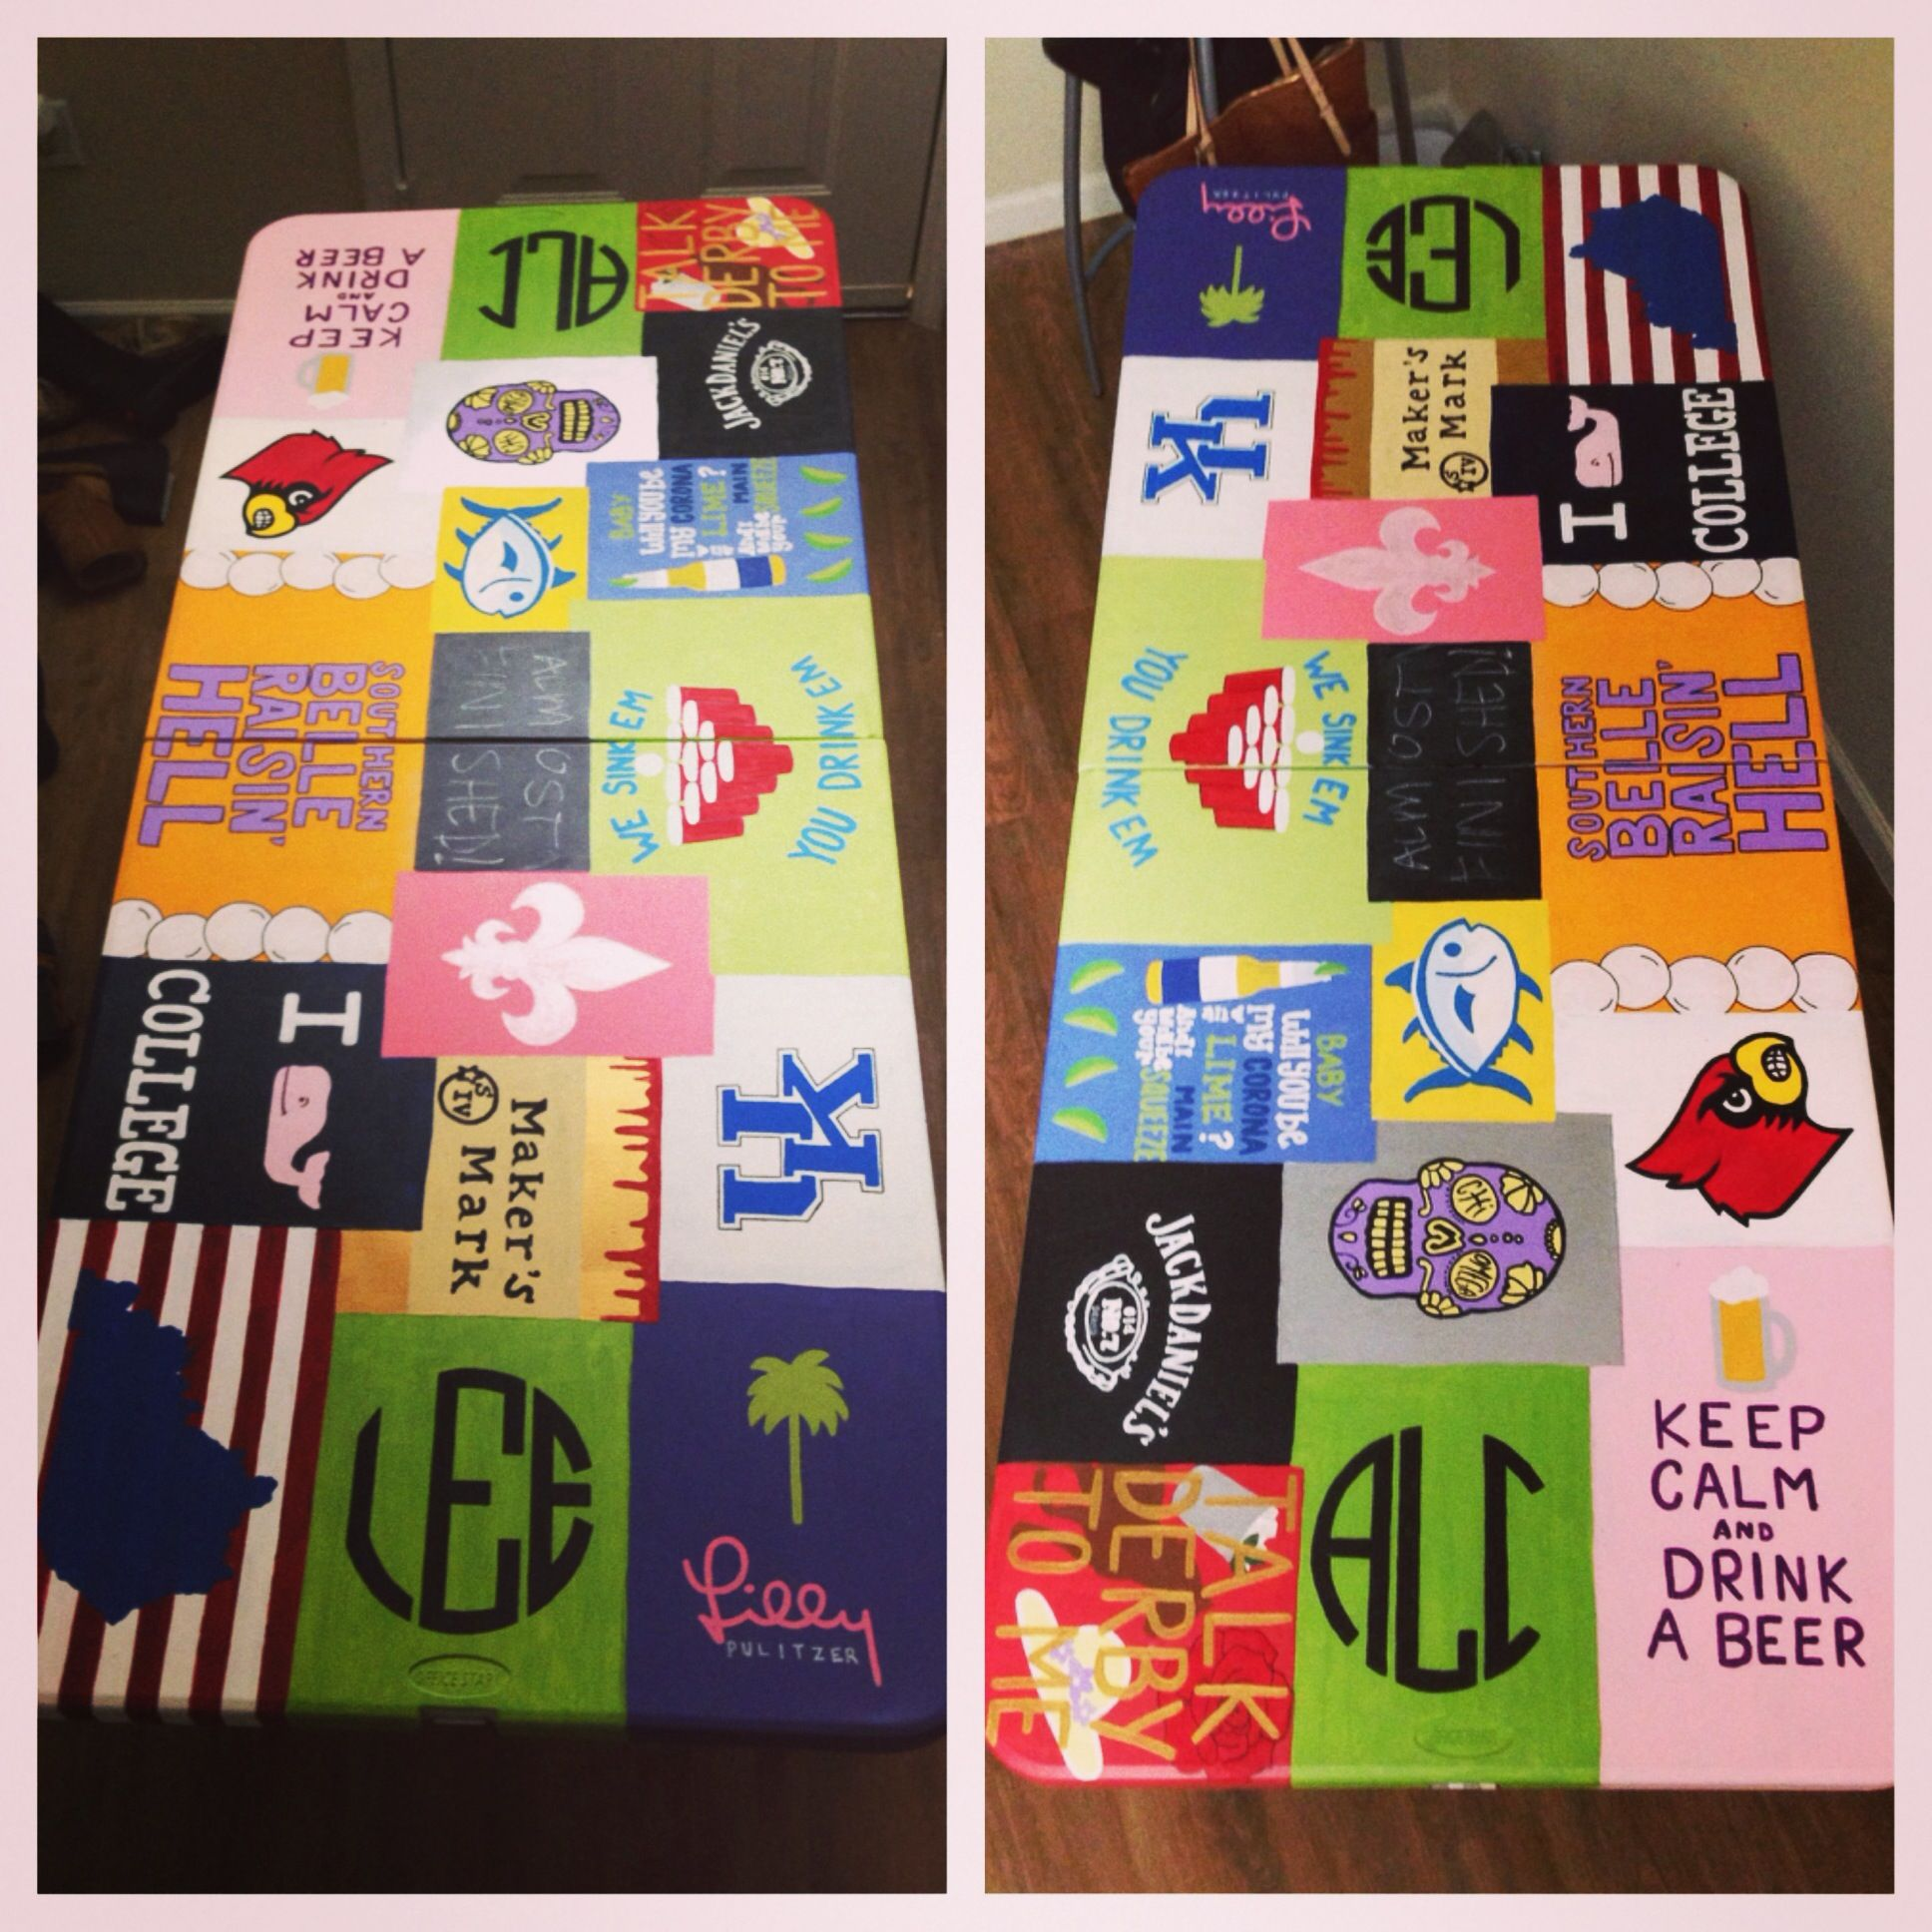 Pin by Ashley Luckett on College | Beer pong table painted, Beer pong table diy, Custom beer pong tables